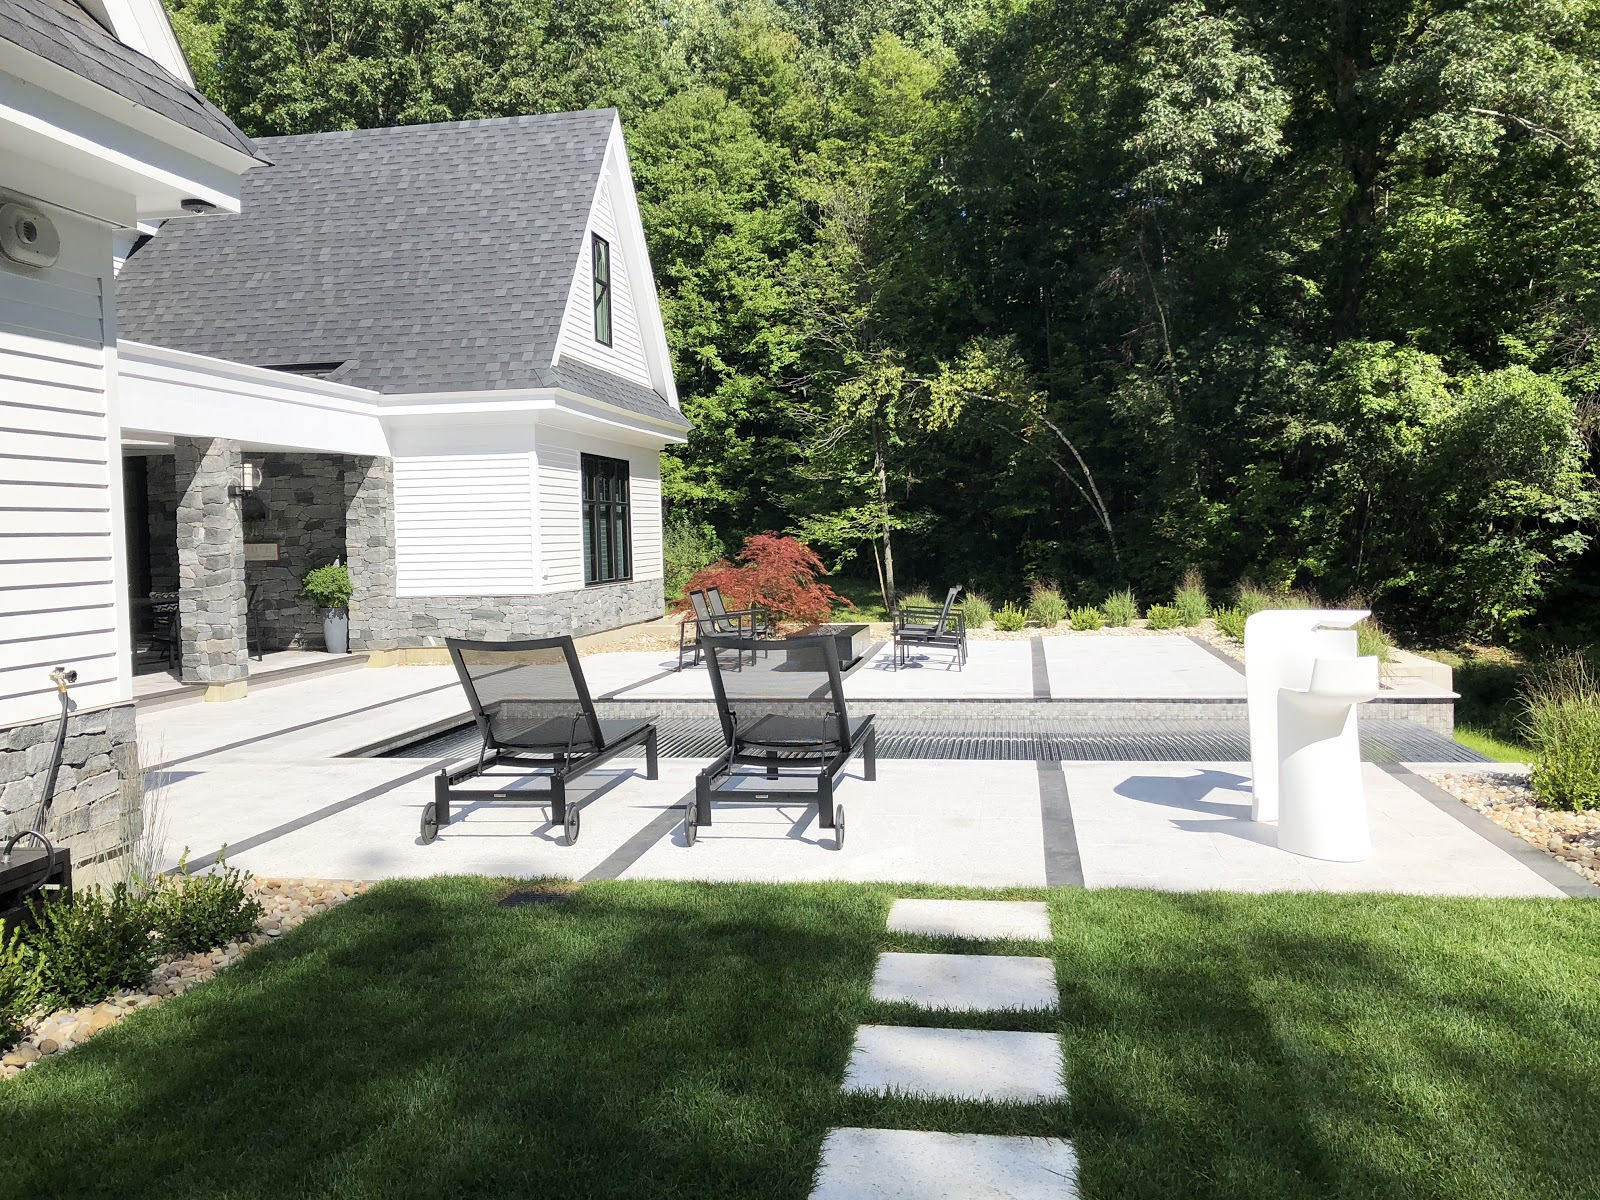 Photo of a backyard patio using Swenson granite